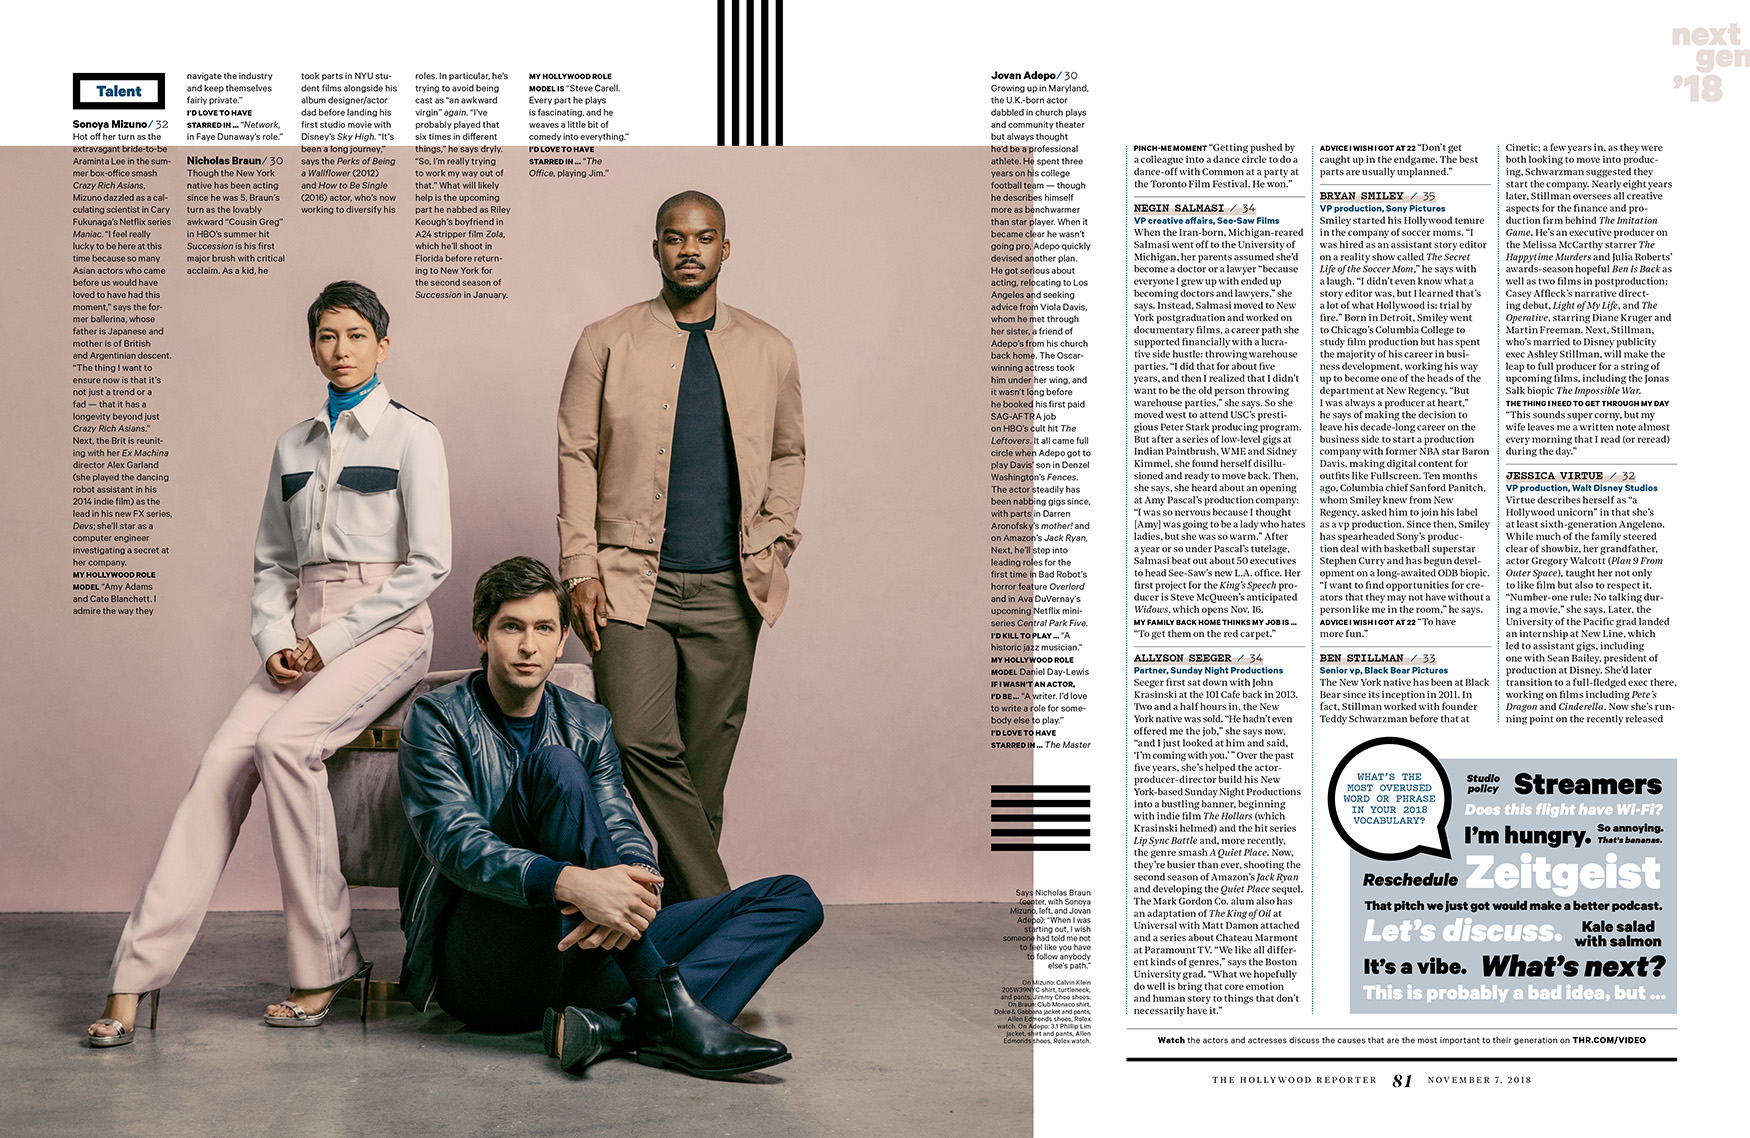 Next Gen 2018 / The Hollywood Reporter / 11.7.18 / kelsey stefanson / art direction + graphic design / yeskelsey.com